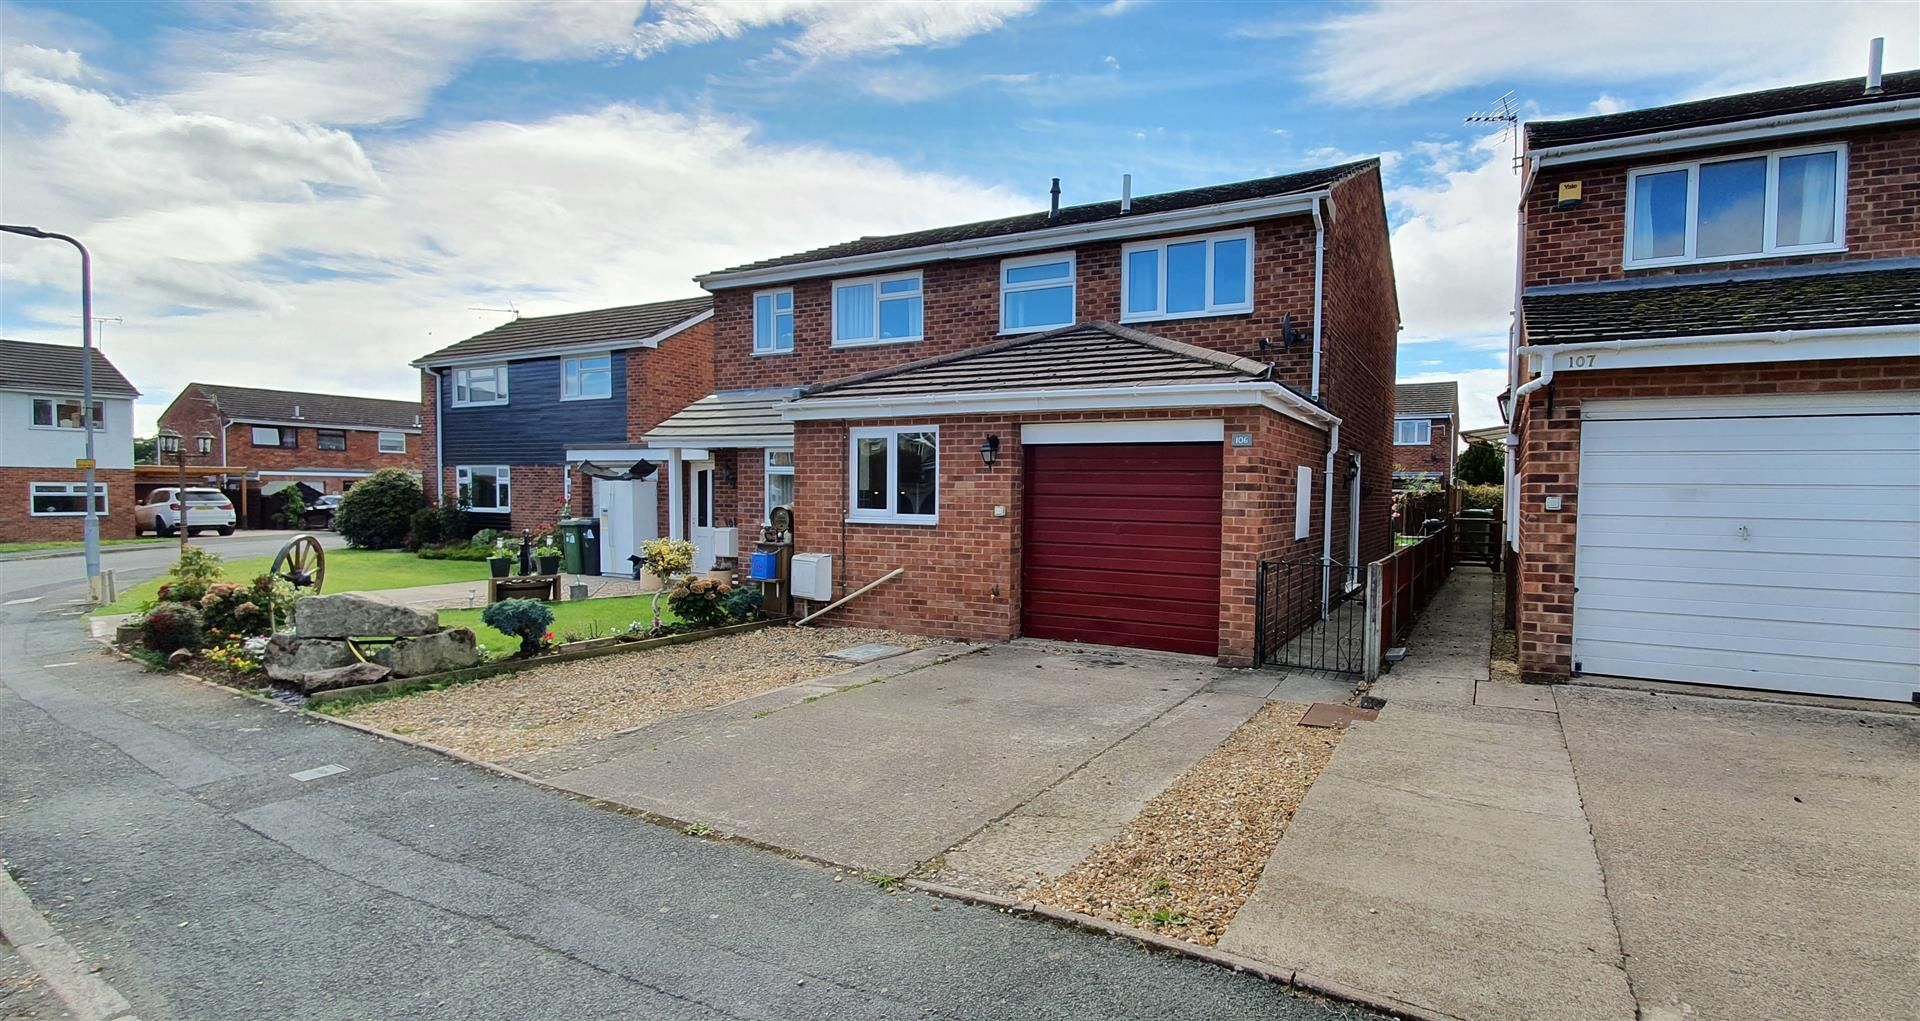 3 bed semi-detached to rent in Credenhill, HR4